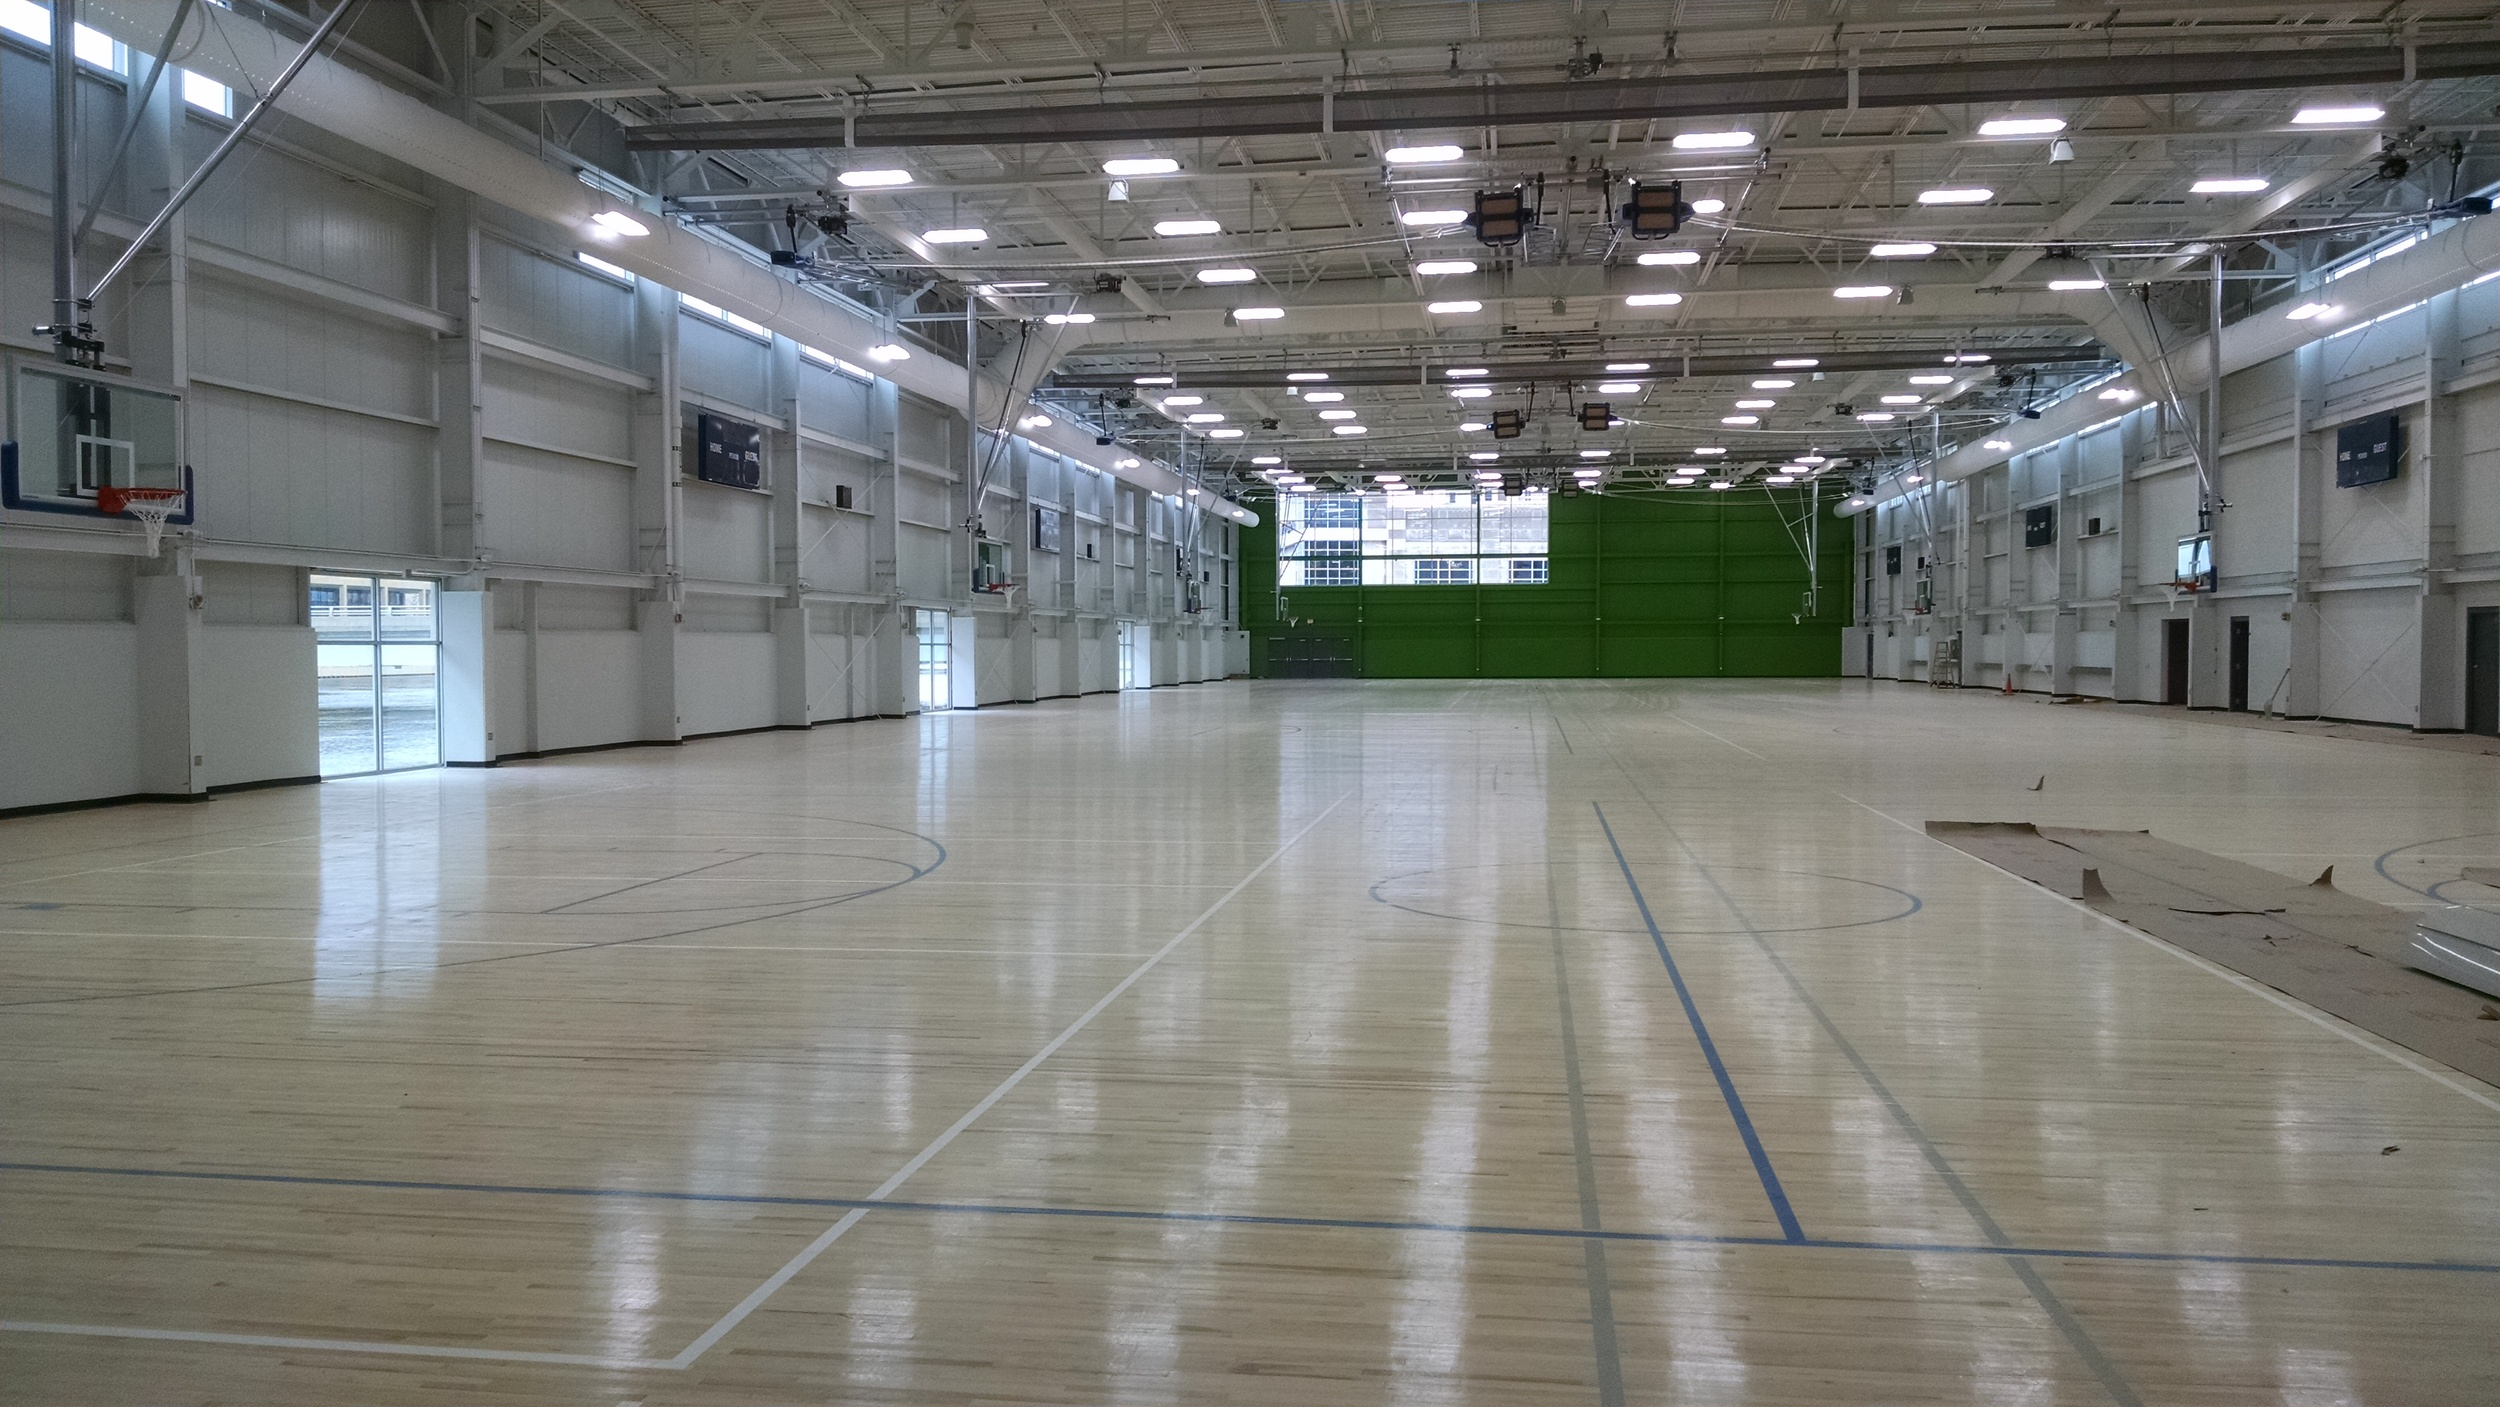 Sports-Factory-Bball-Courts1.jpg